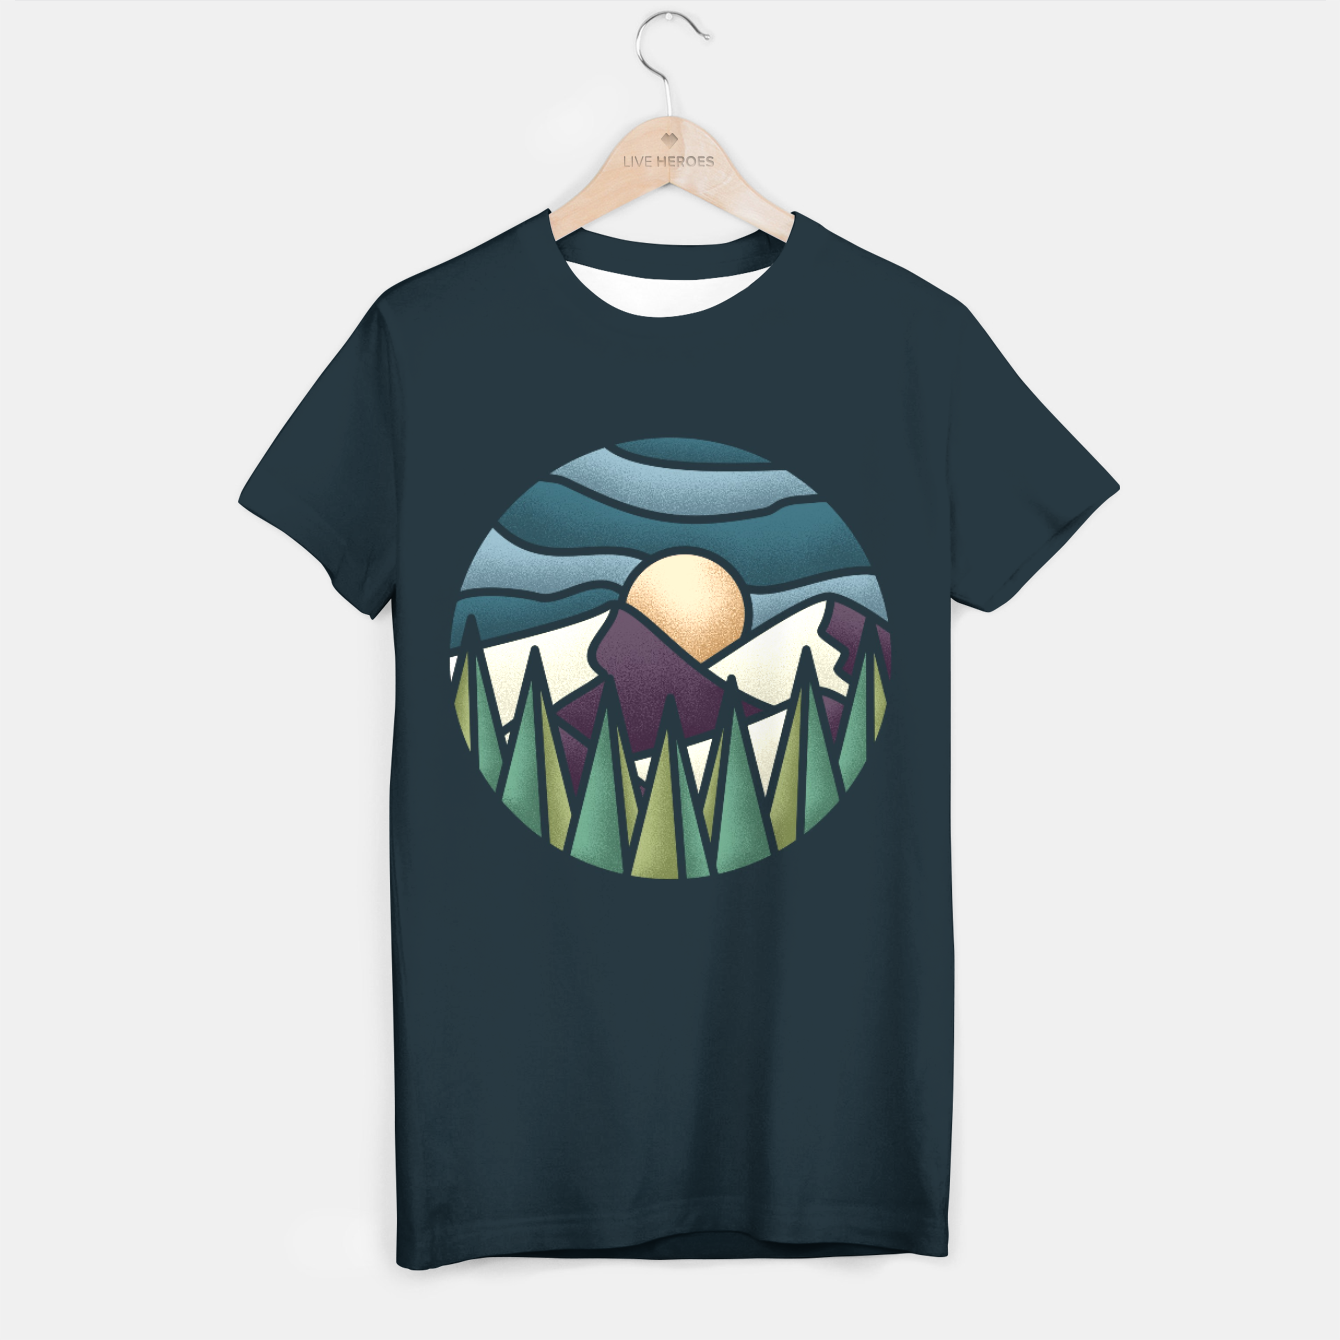 Zdjęcie The Great Landscape T-shirt - Live Heroes